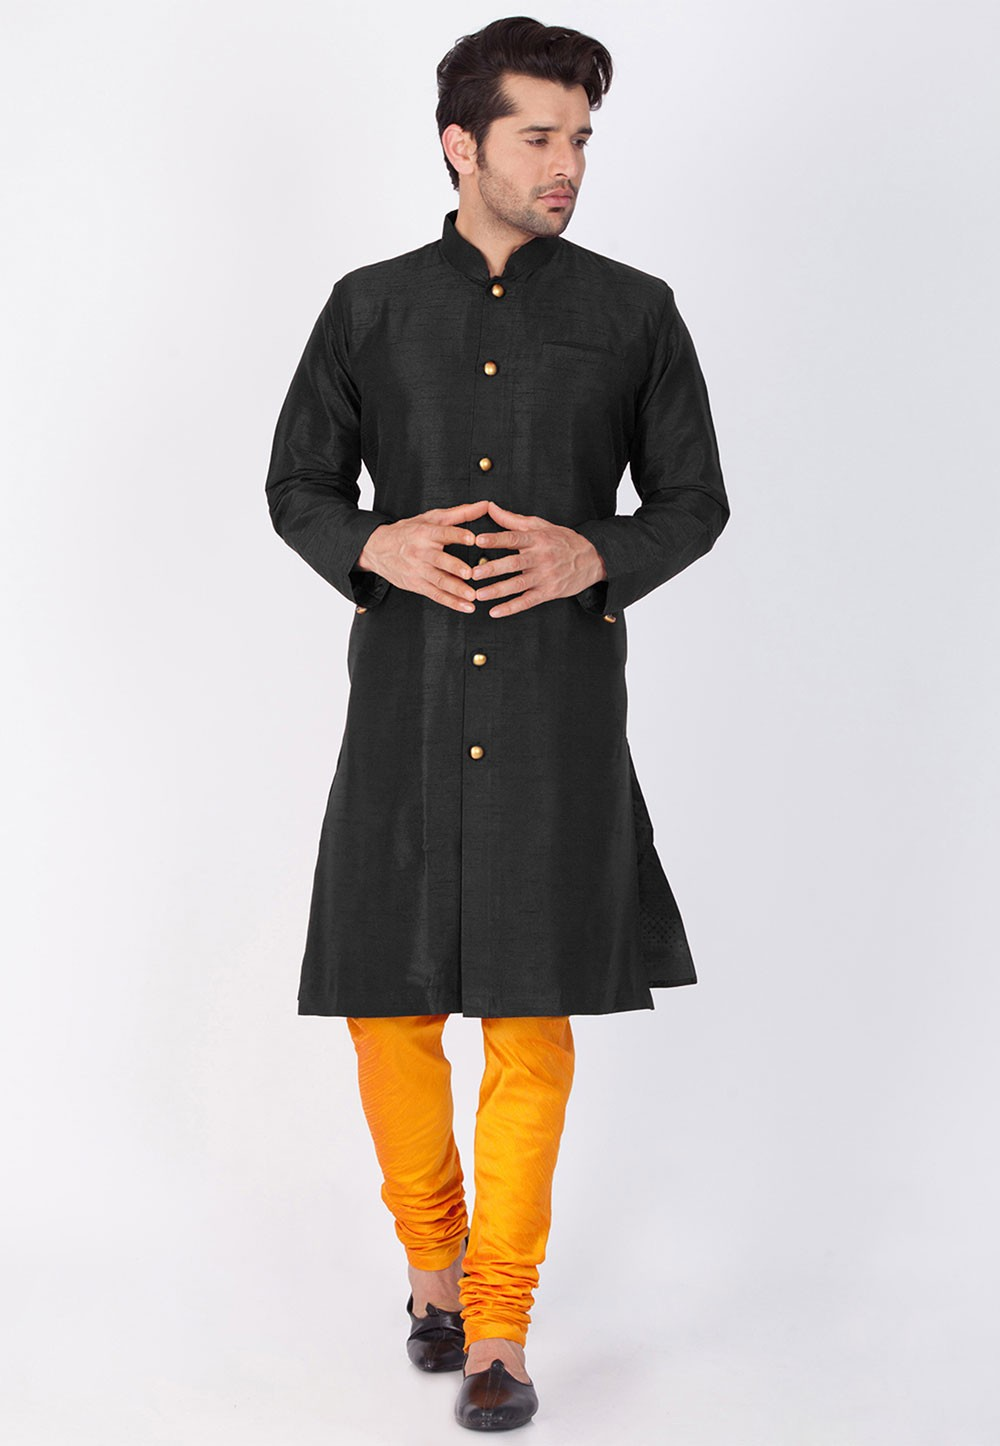 Black Color Indian Kurta Pajama.